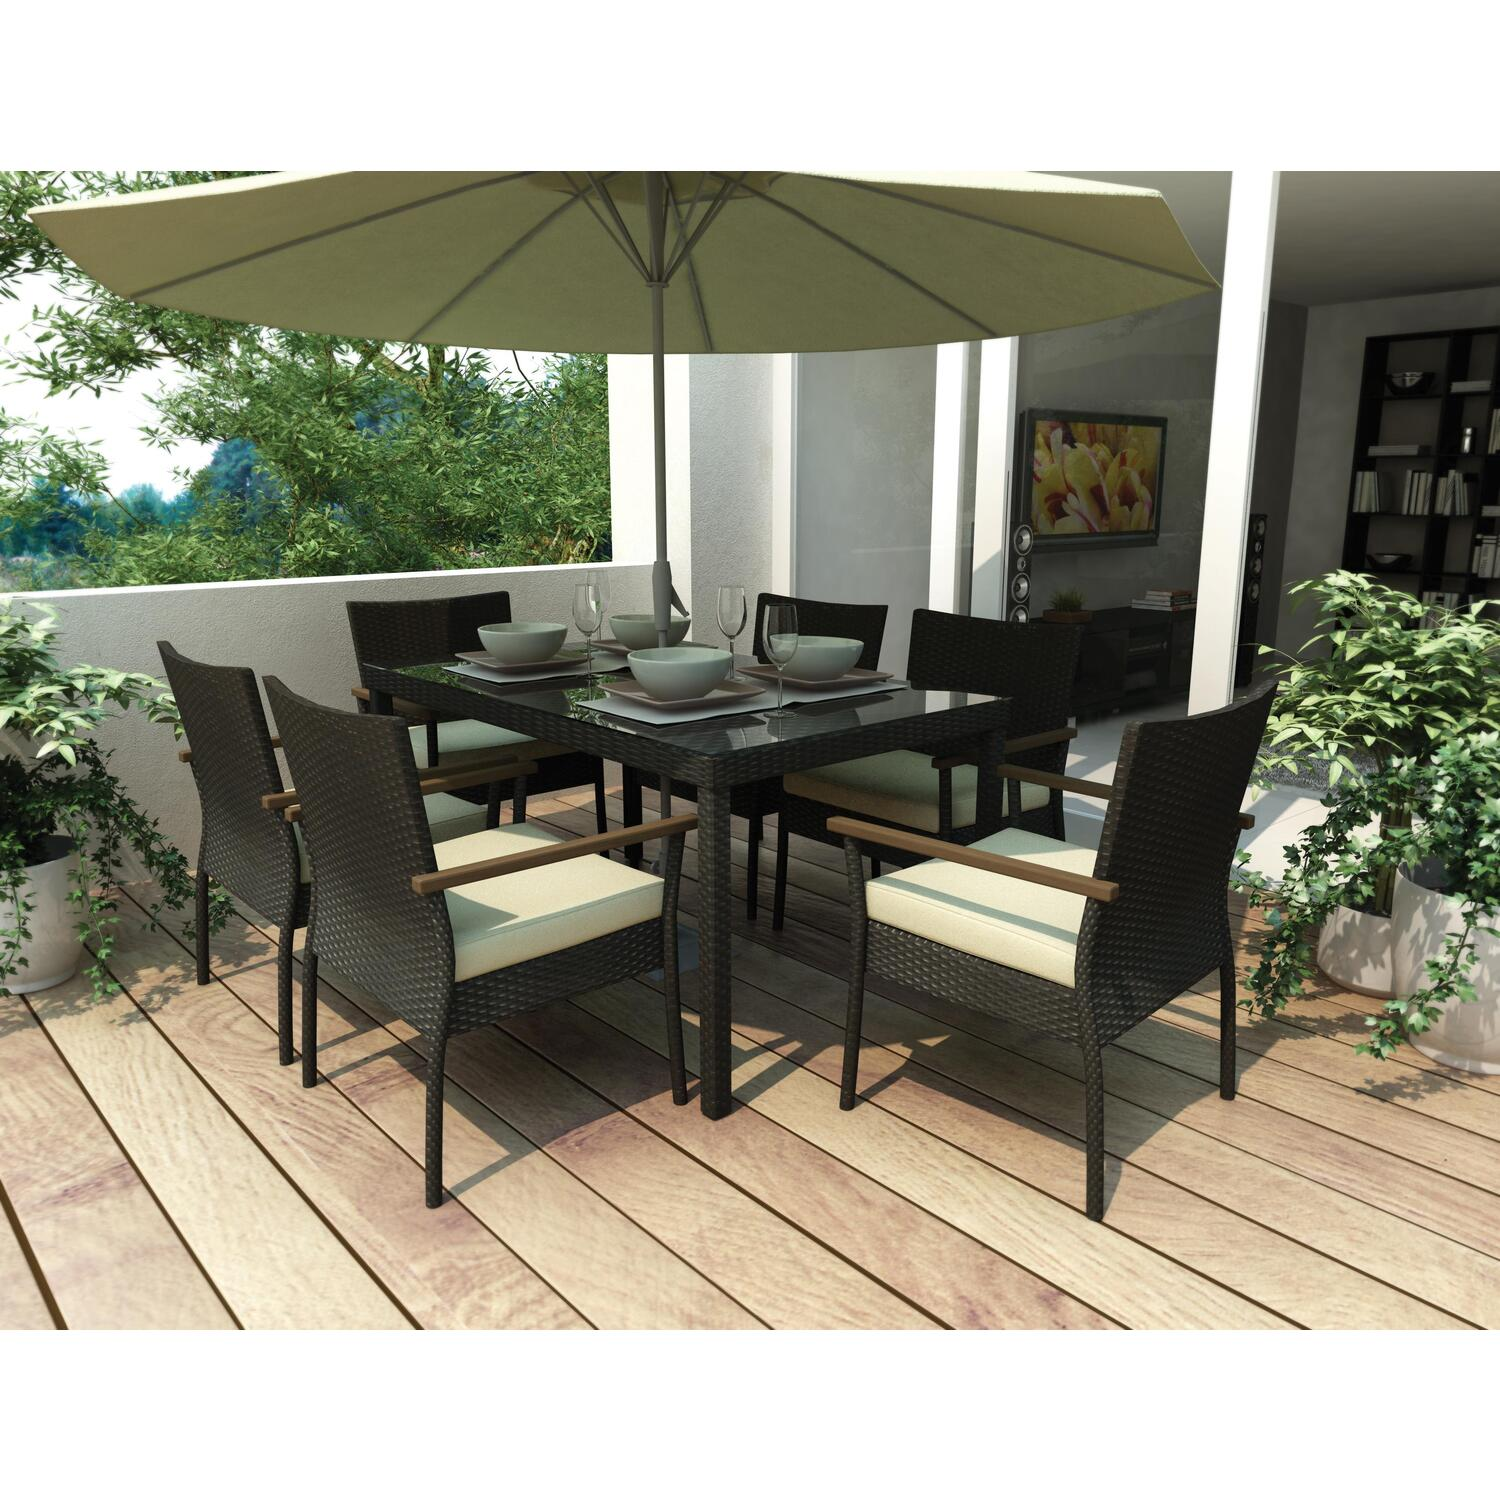 Patio dinning sets patio design ideas for Outdoor patio set